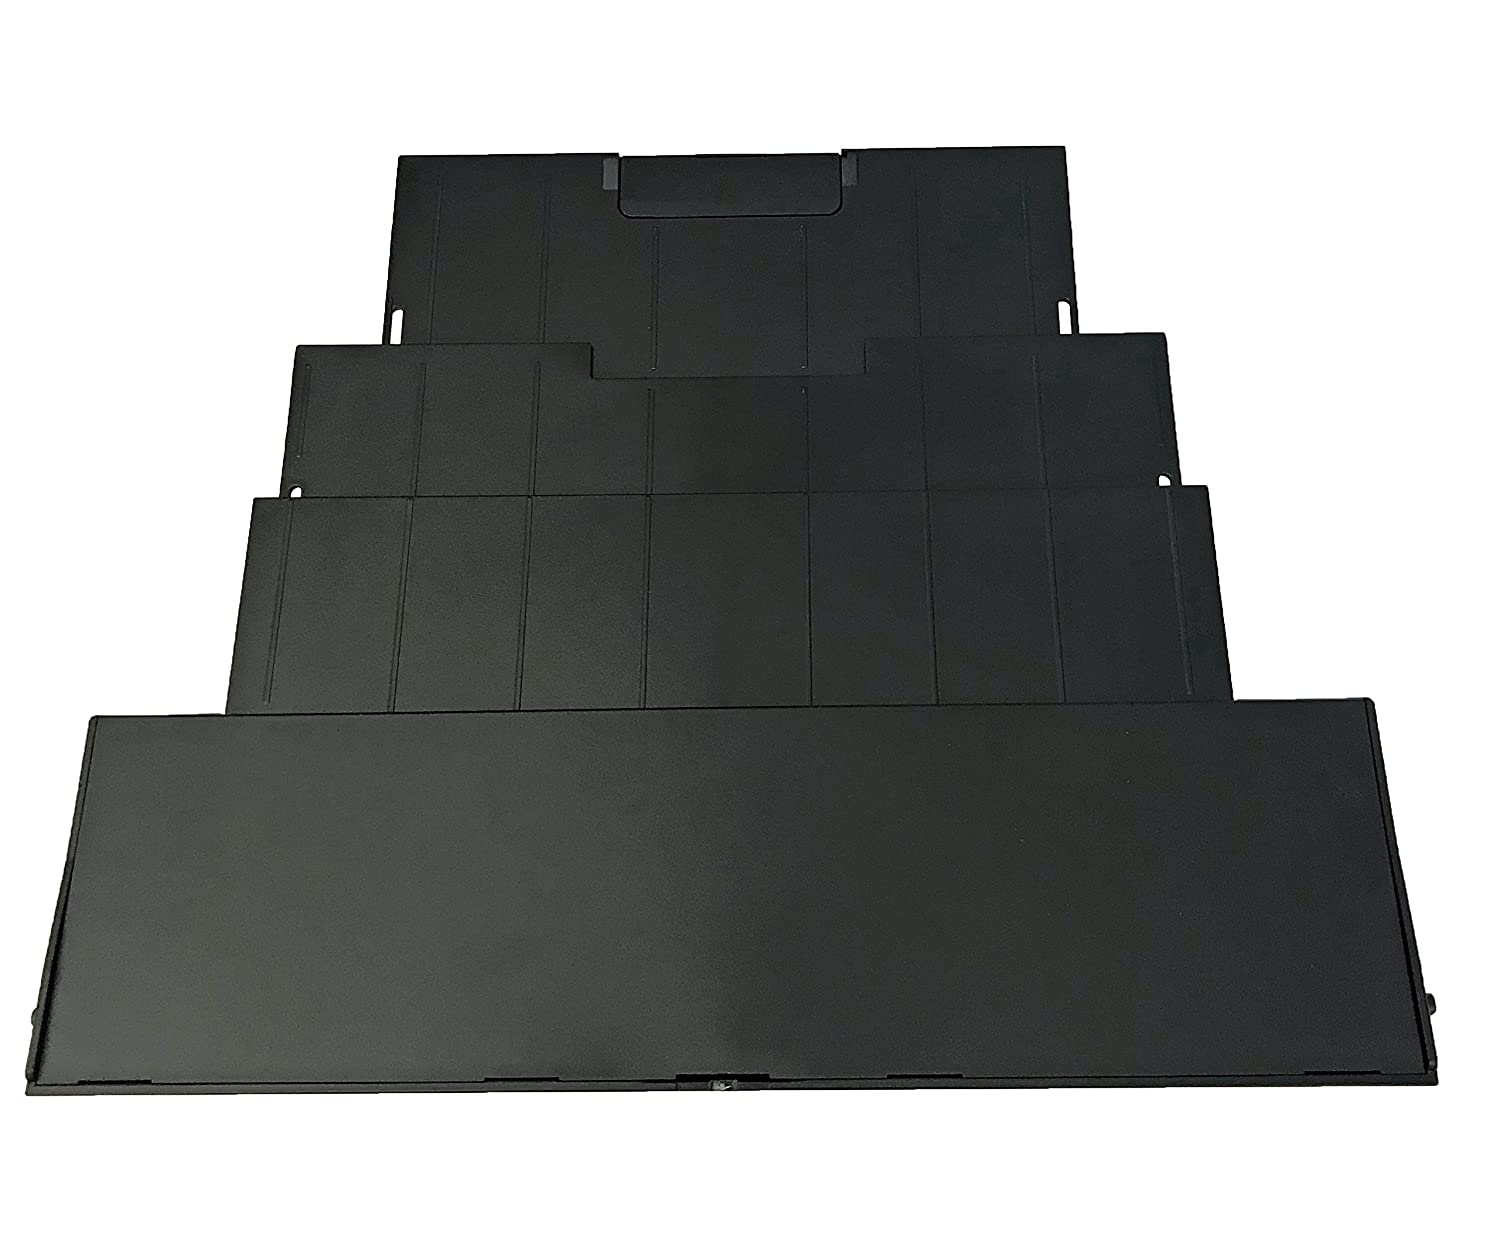 Amazon.com: OEM Epson Stacker Assembly / Output Tray Specifically For Epson  Stylus TX203, Stylus TX209, Stylus TX210, Stylus TX213: Electronics